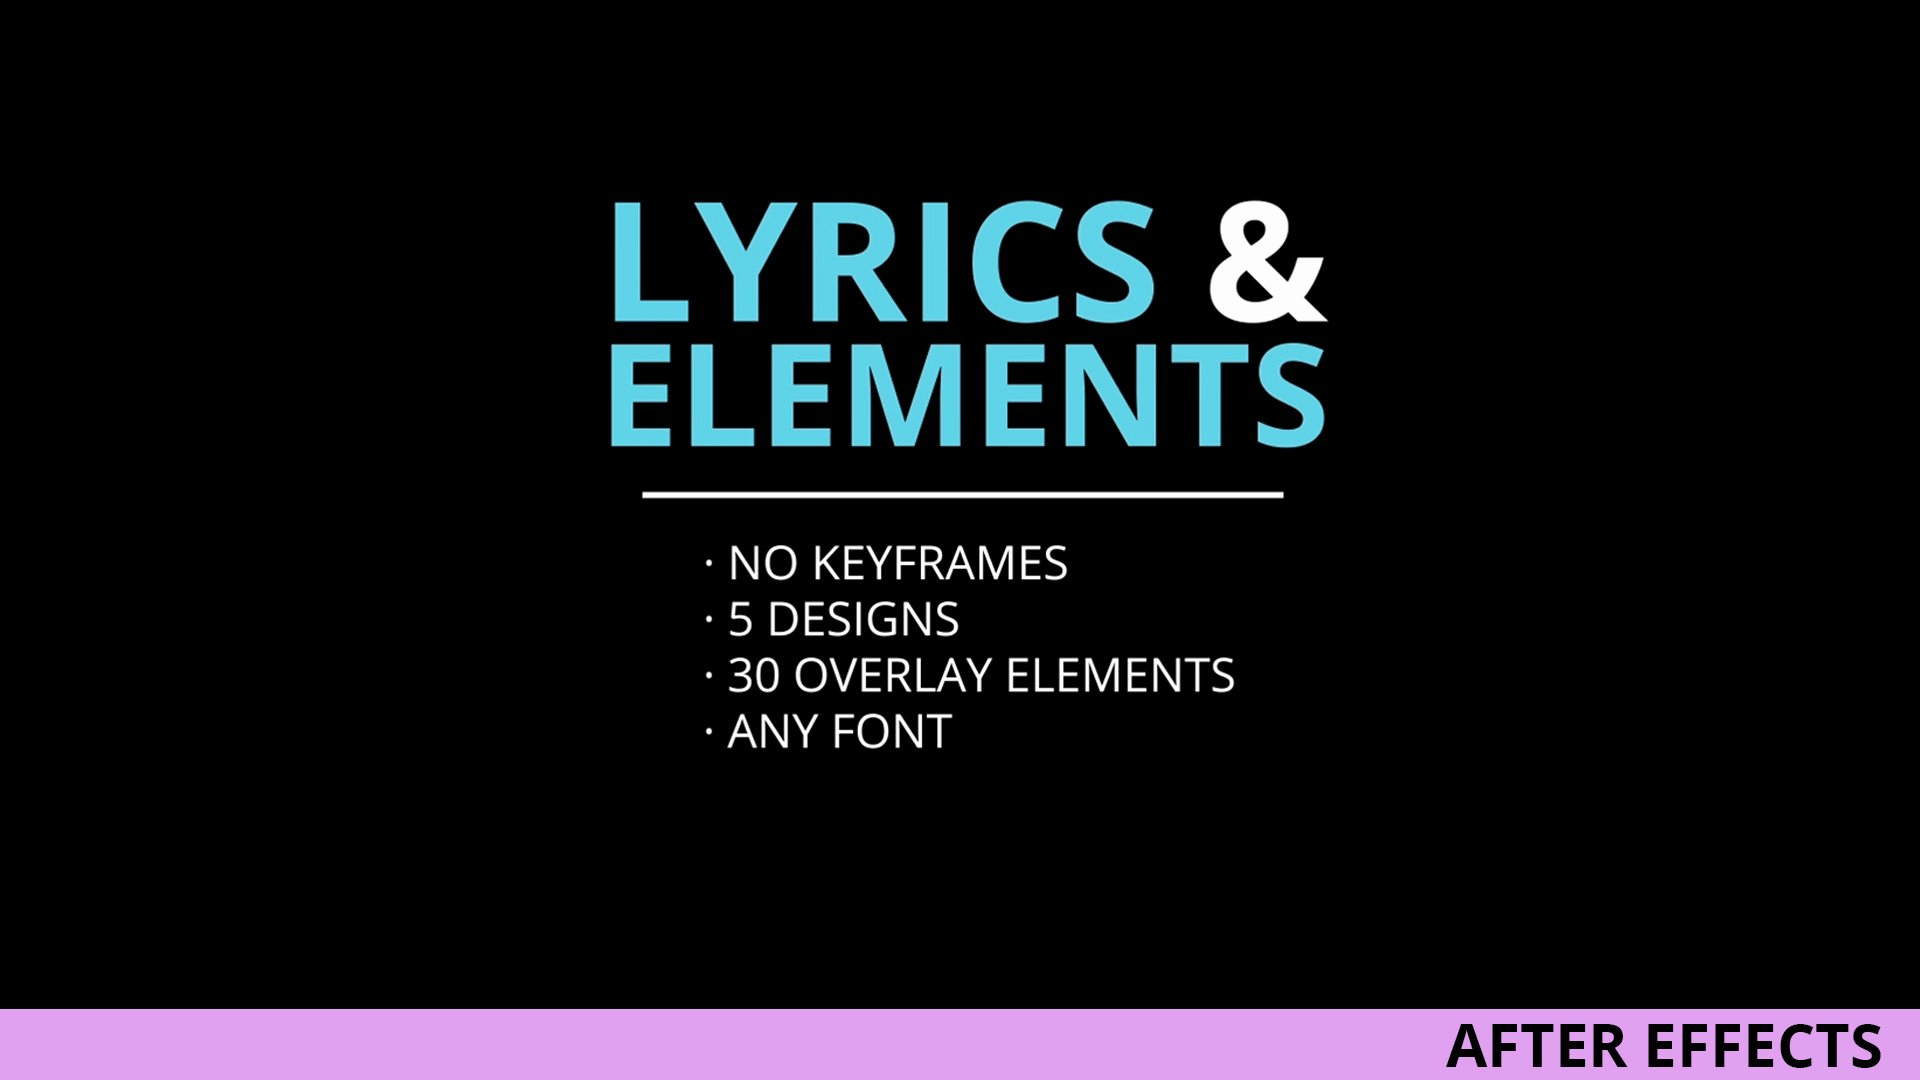 Lyric Video after Effects Elegant Lyrics and Elements after Effects Templates